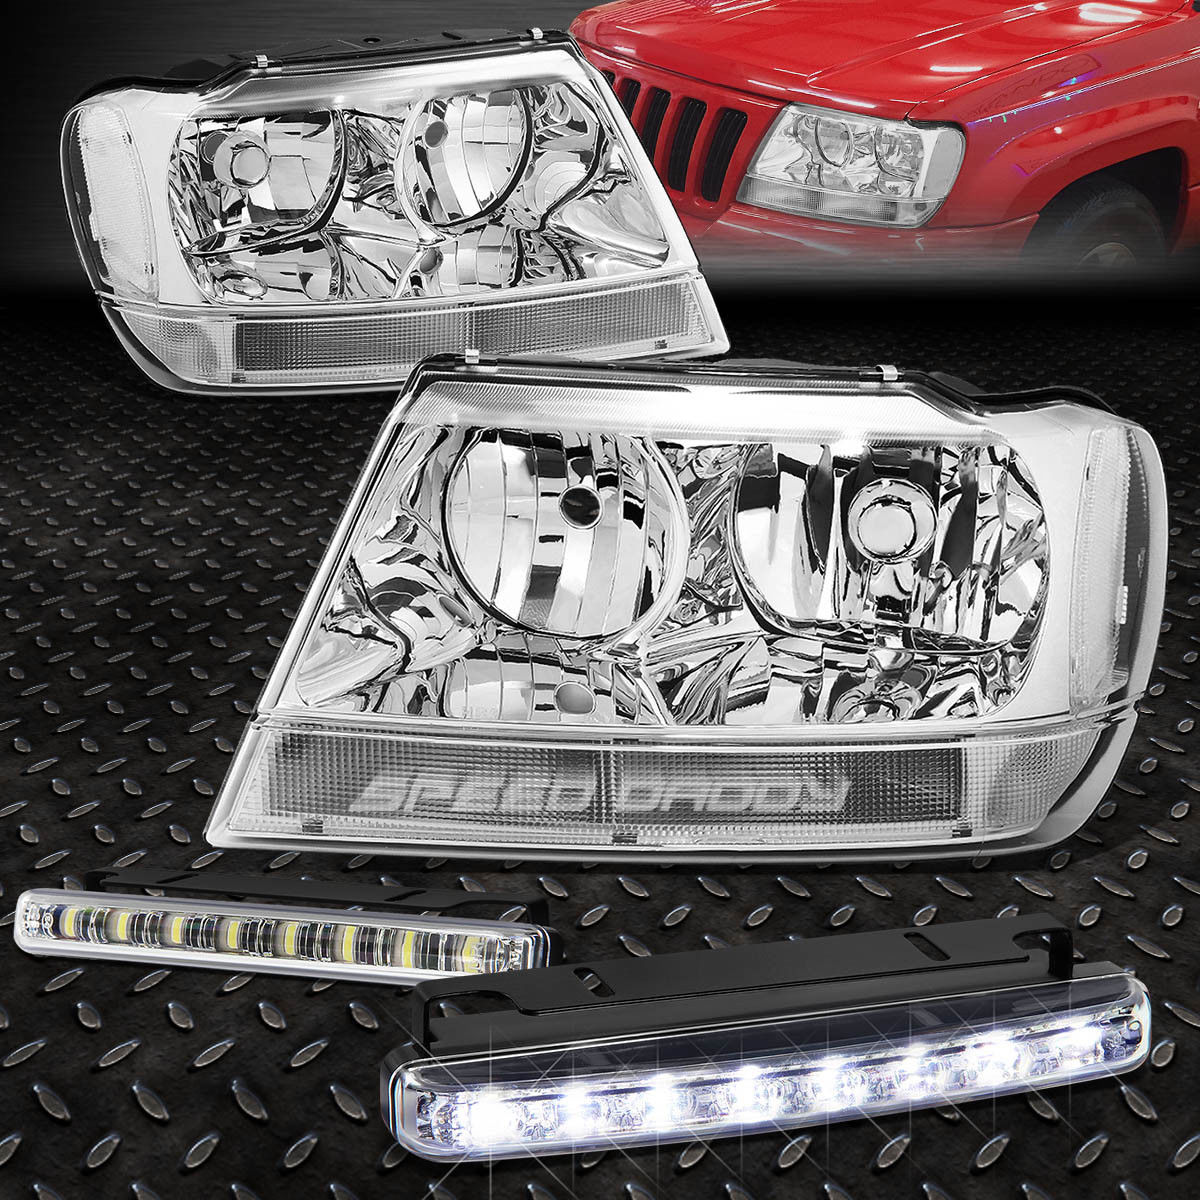 フォグライト CHROME HOUSING CLEAR CORNER HEADLIGHTS+LED FOG LIGHT FOR 99-04 GRAND CHEROKEE WJ CHROME HOUSINGクリアコーナーヘッドライト+ 99-04 GRAND CHEROKEE WJ用LED FOGライト